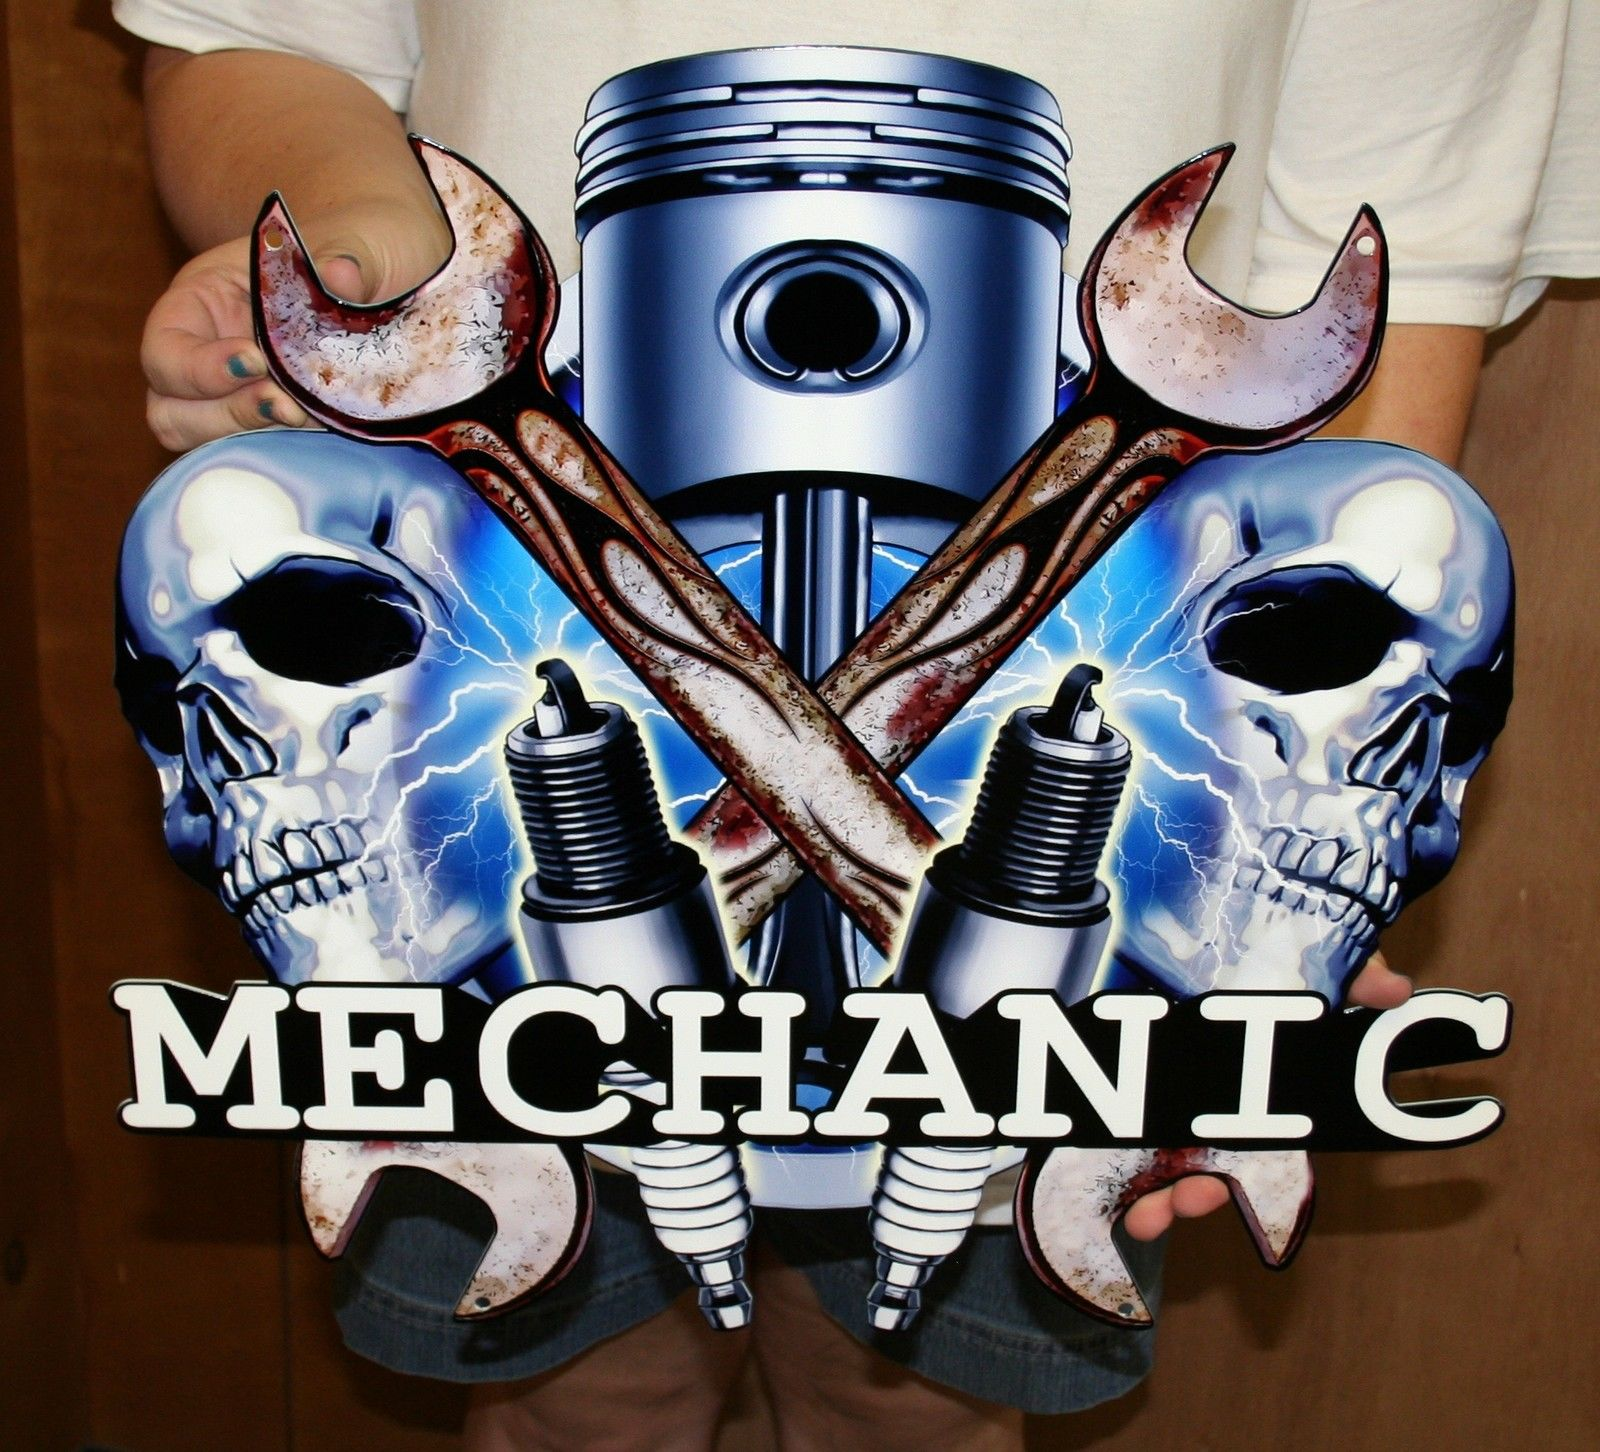 Man Cave Signs Ontario : Mechanic mancave sign custom steel signs and gifts